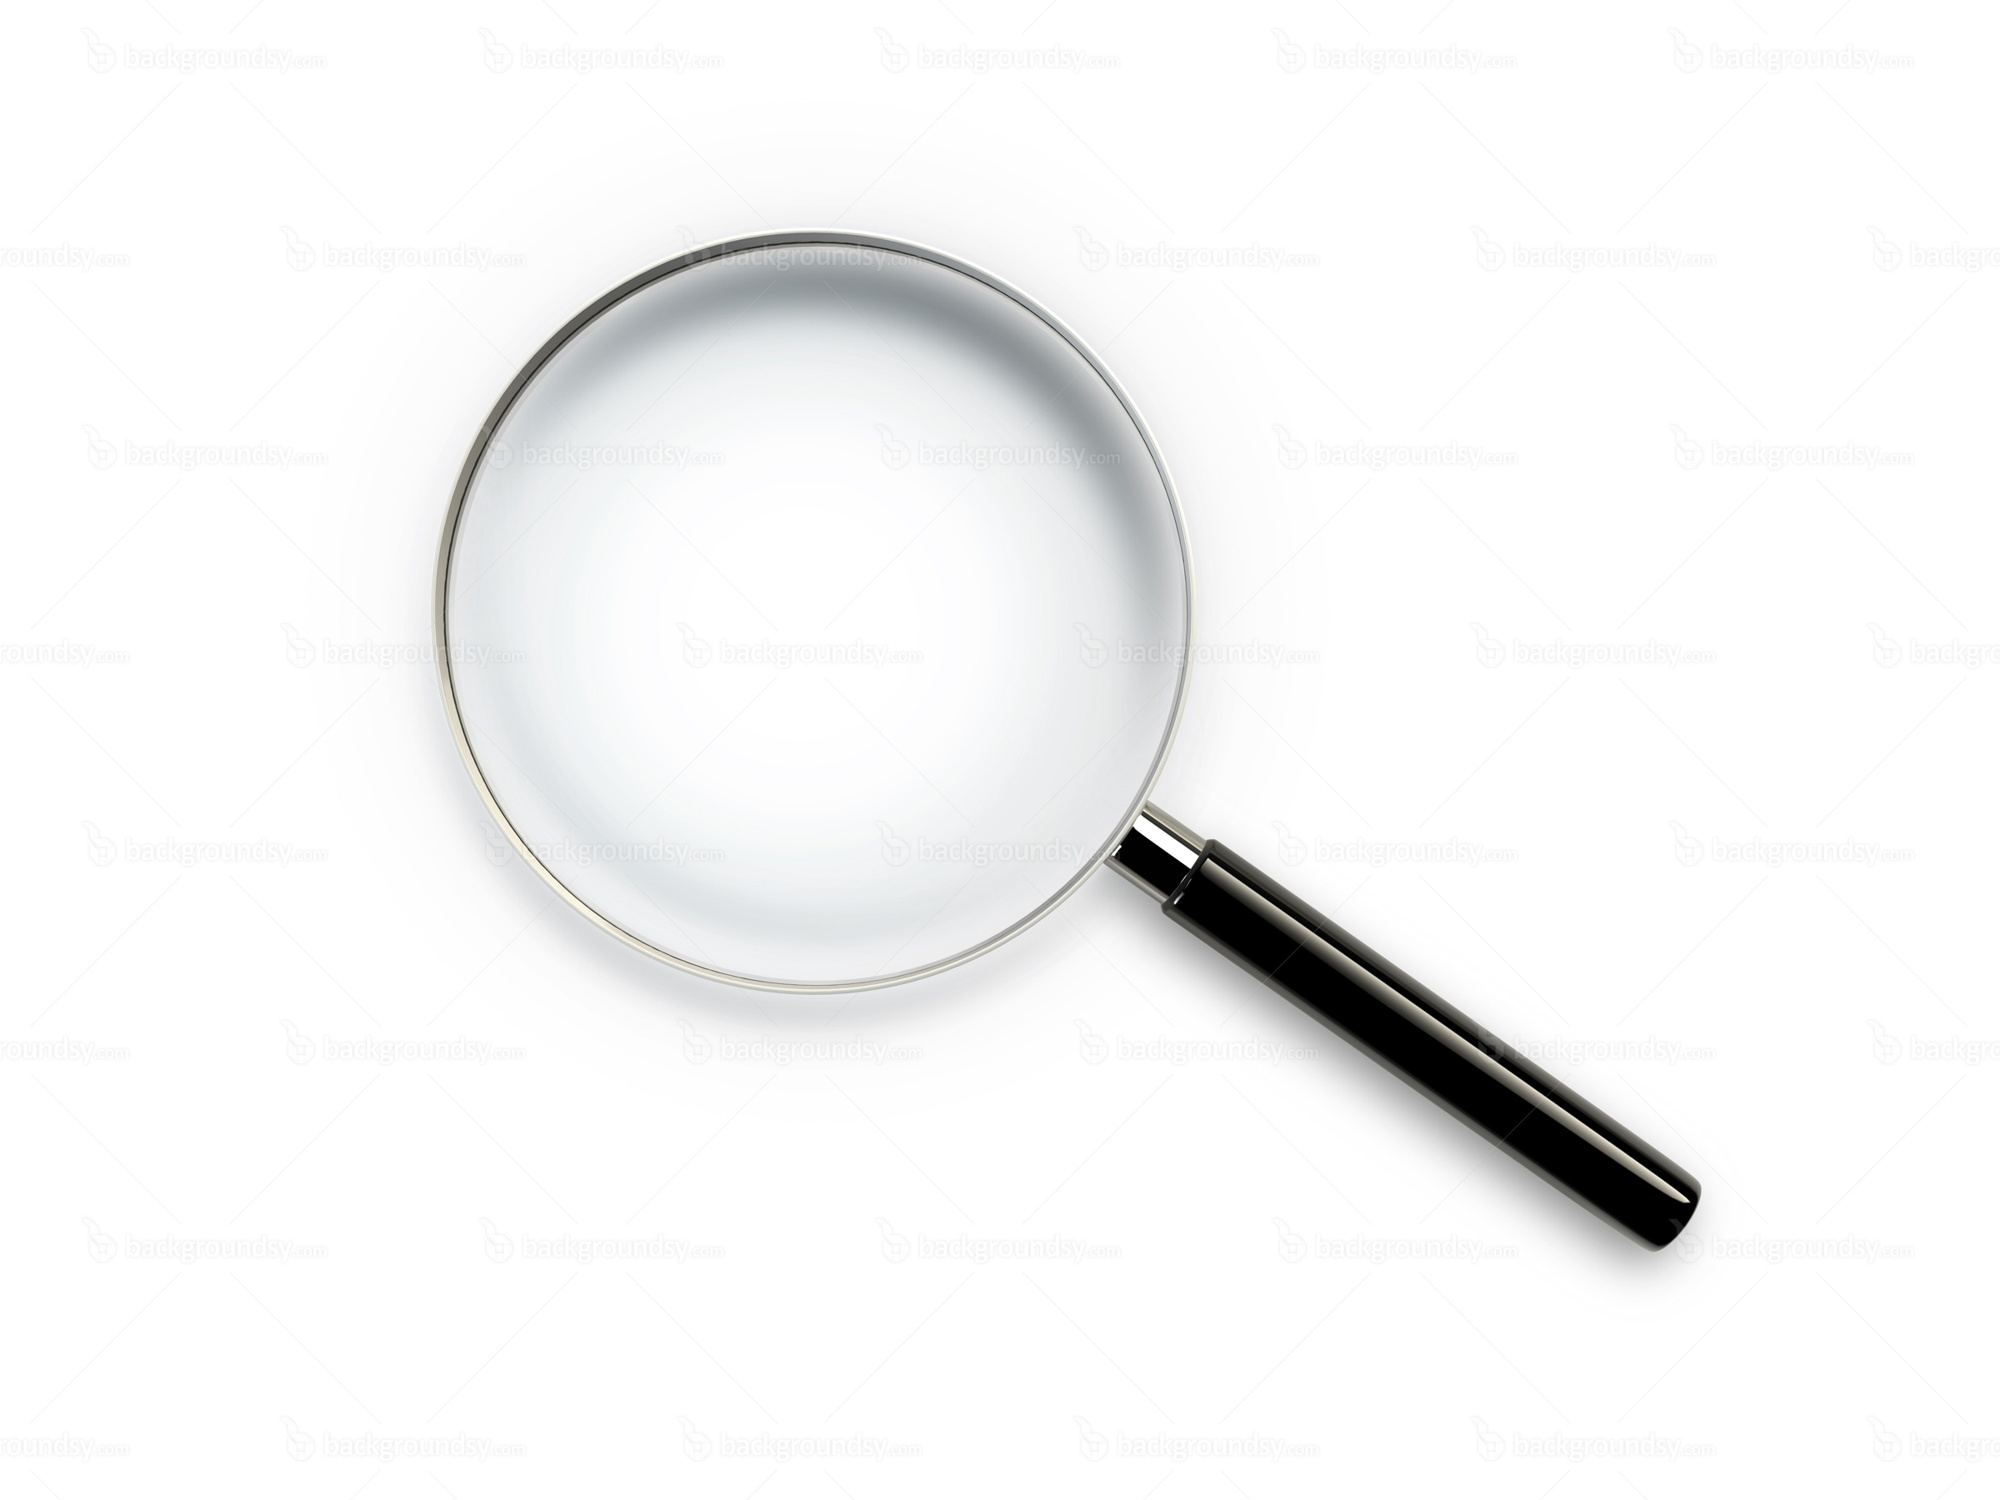 Magnifying glass | Backgroundsy.com